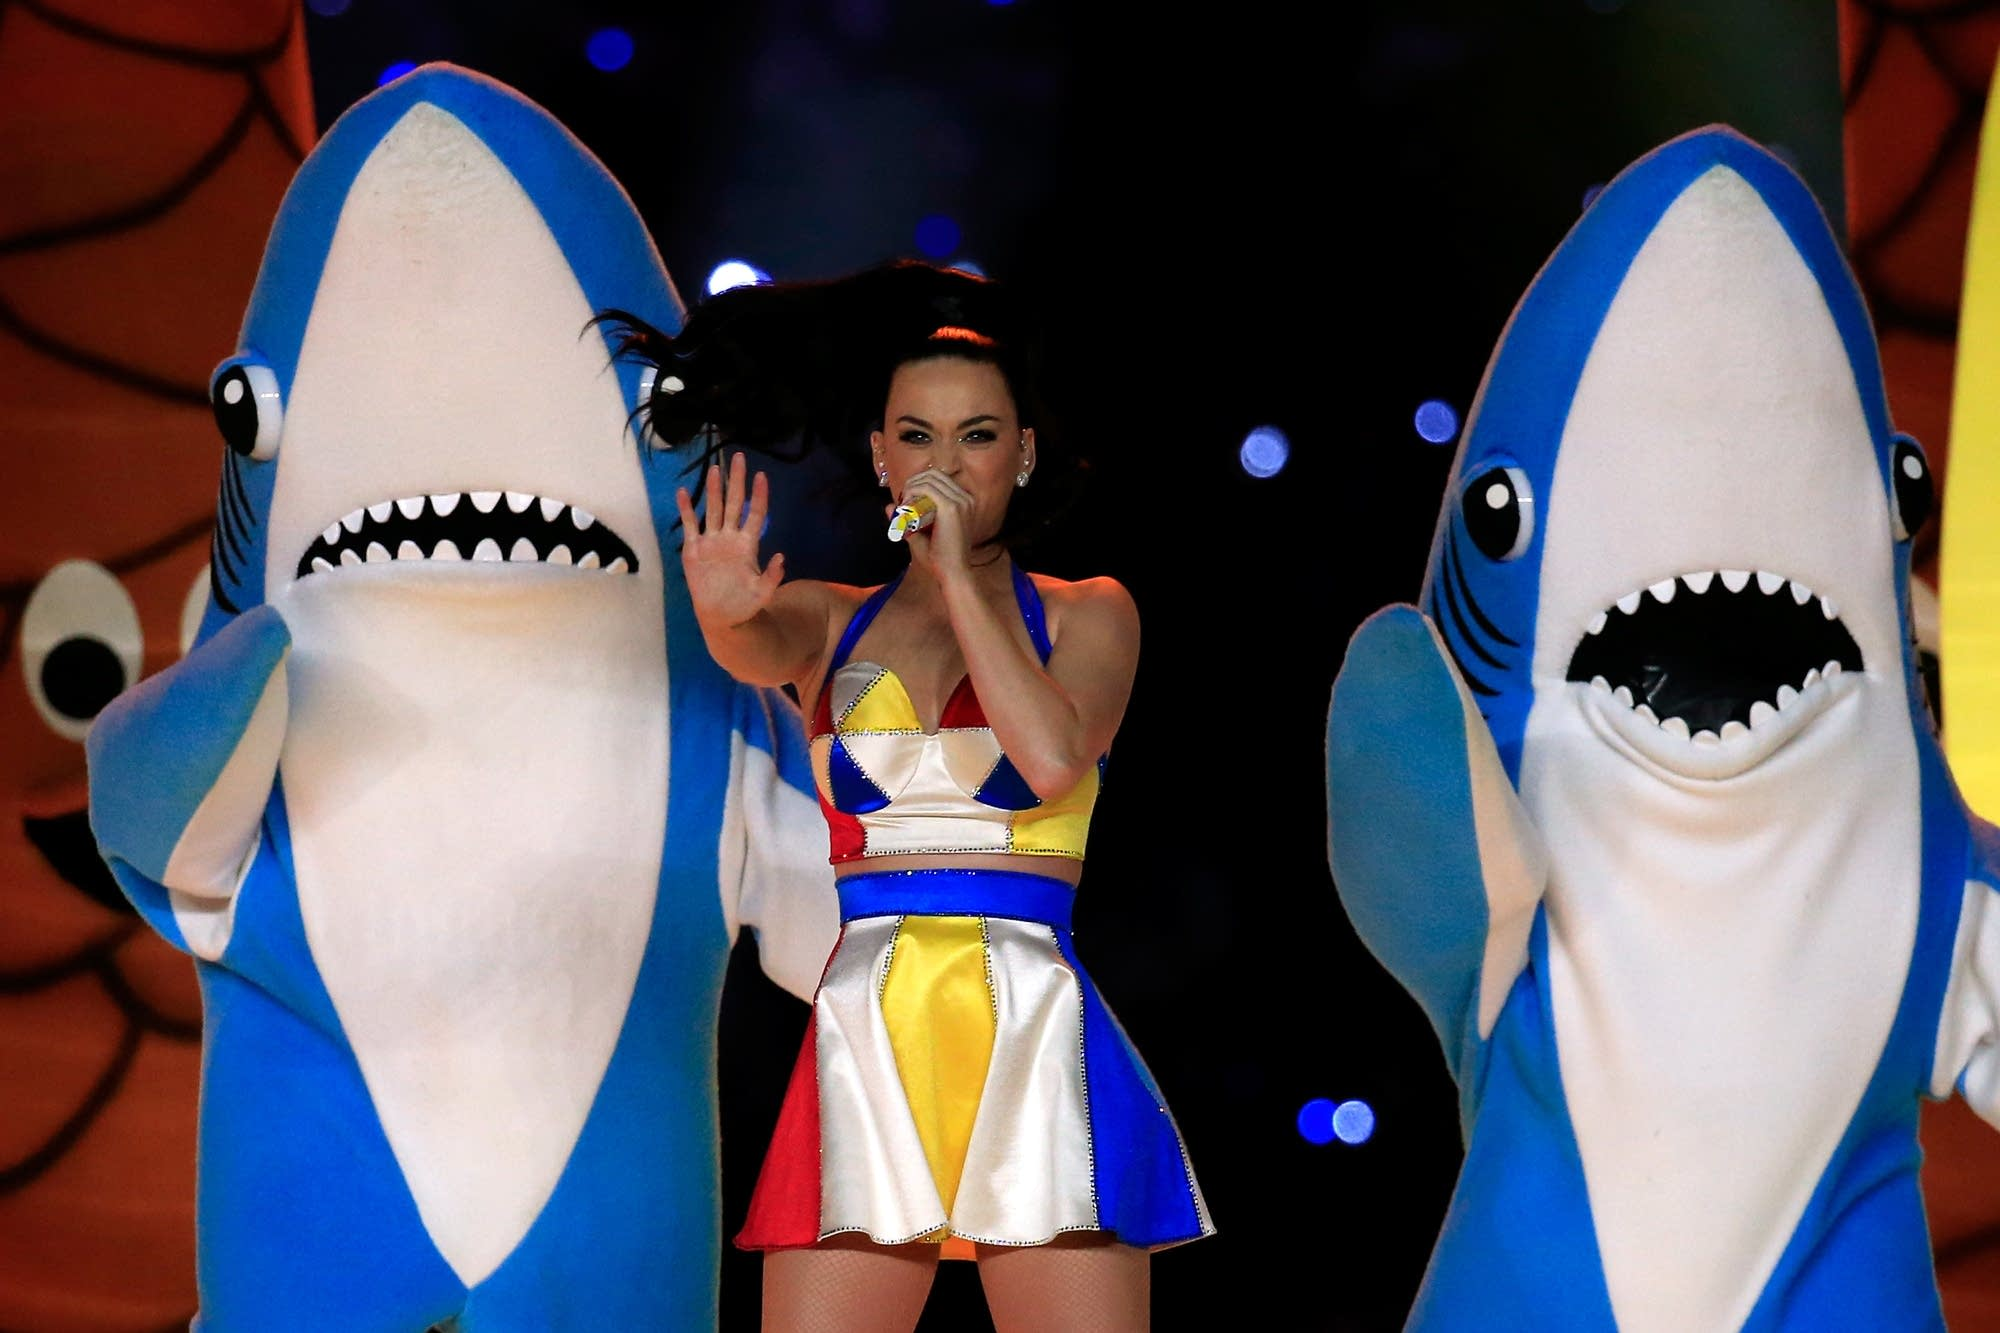 Katy Perry performs during the Super Bowl halftime show in 2015.